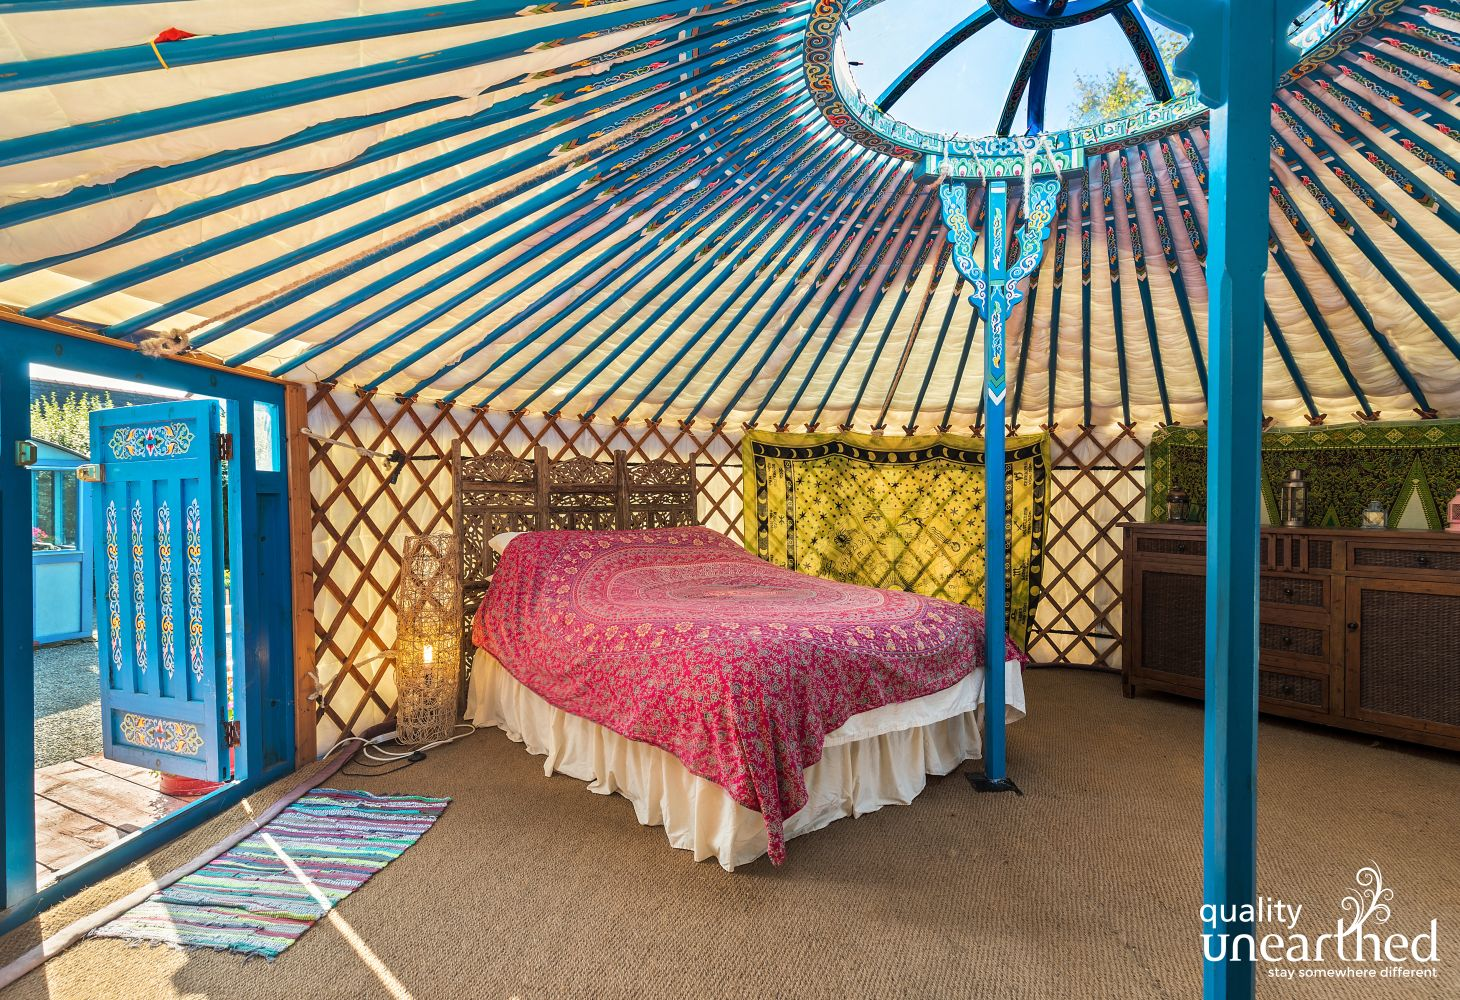 Monty's Yurt in Littlehaven